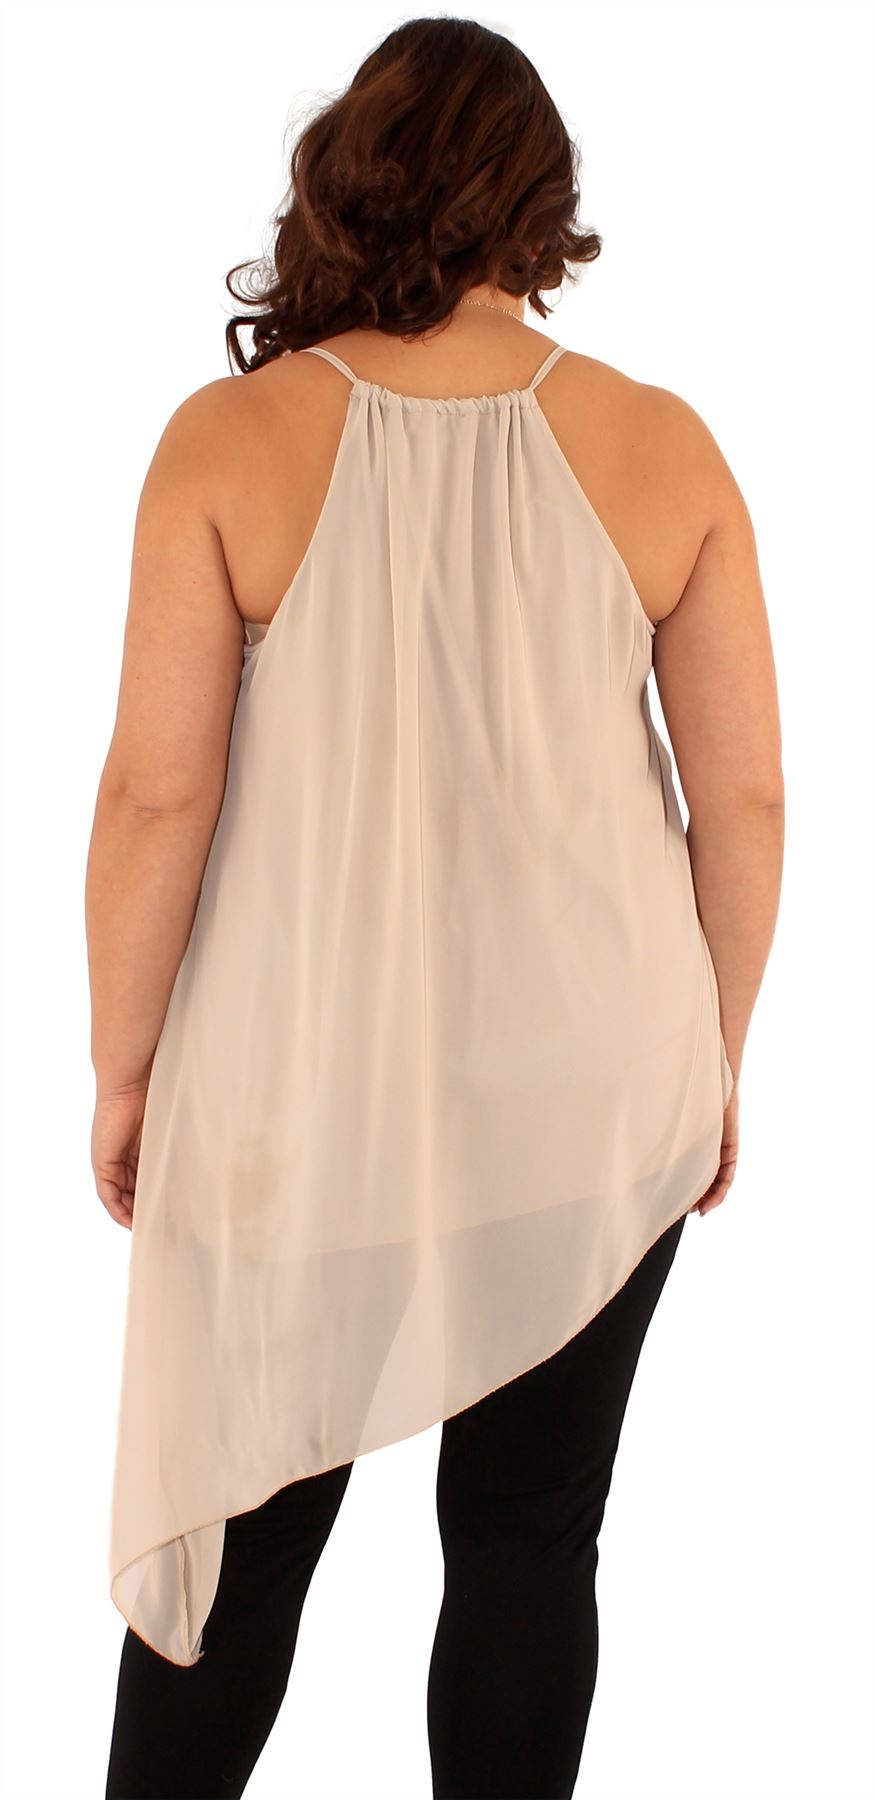 New Ladies Asymmetric Plunge  V-Neck  Woven Chiffon Lined Jersey Tops 16-26